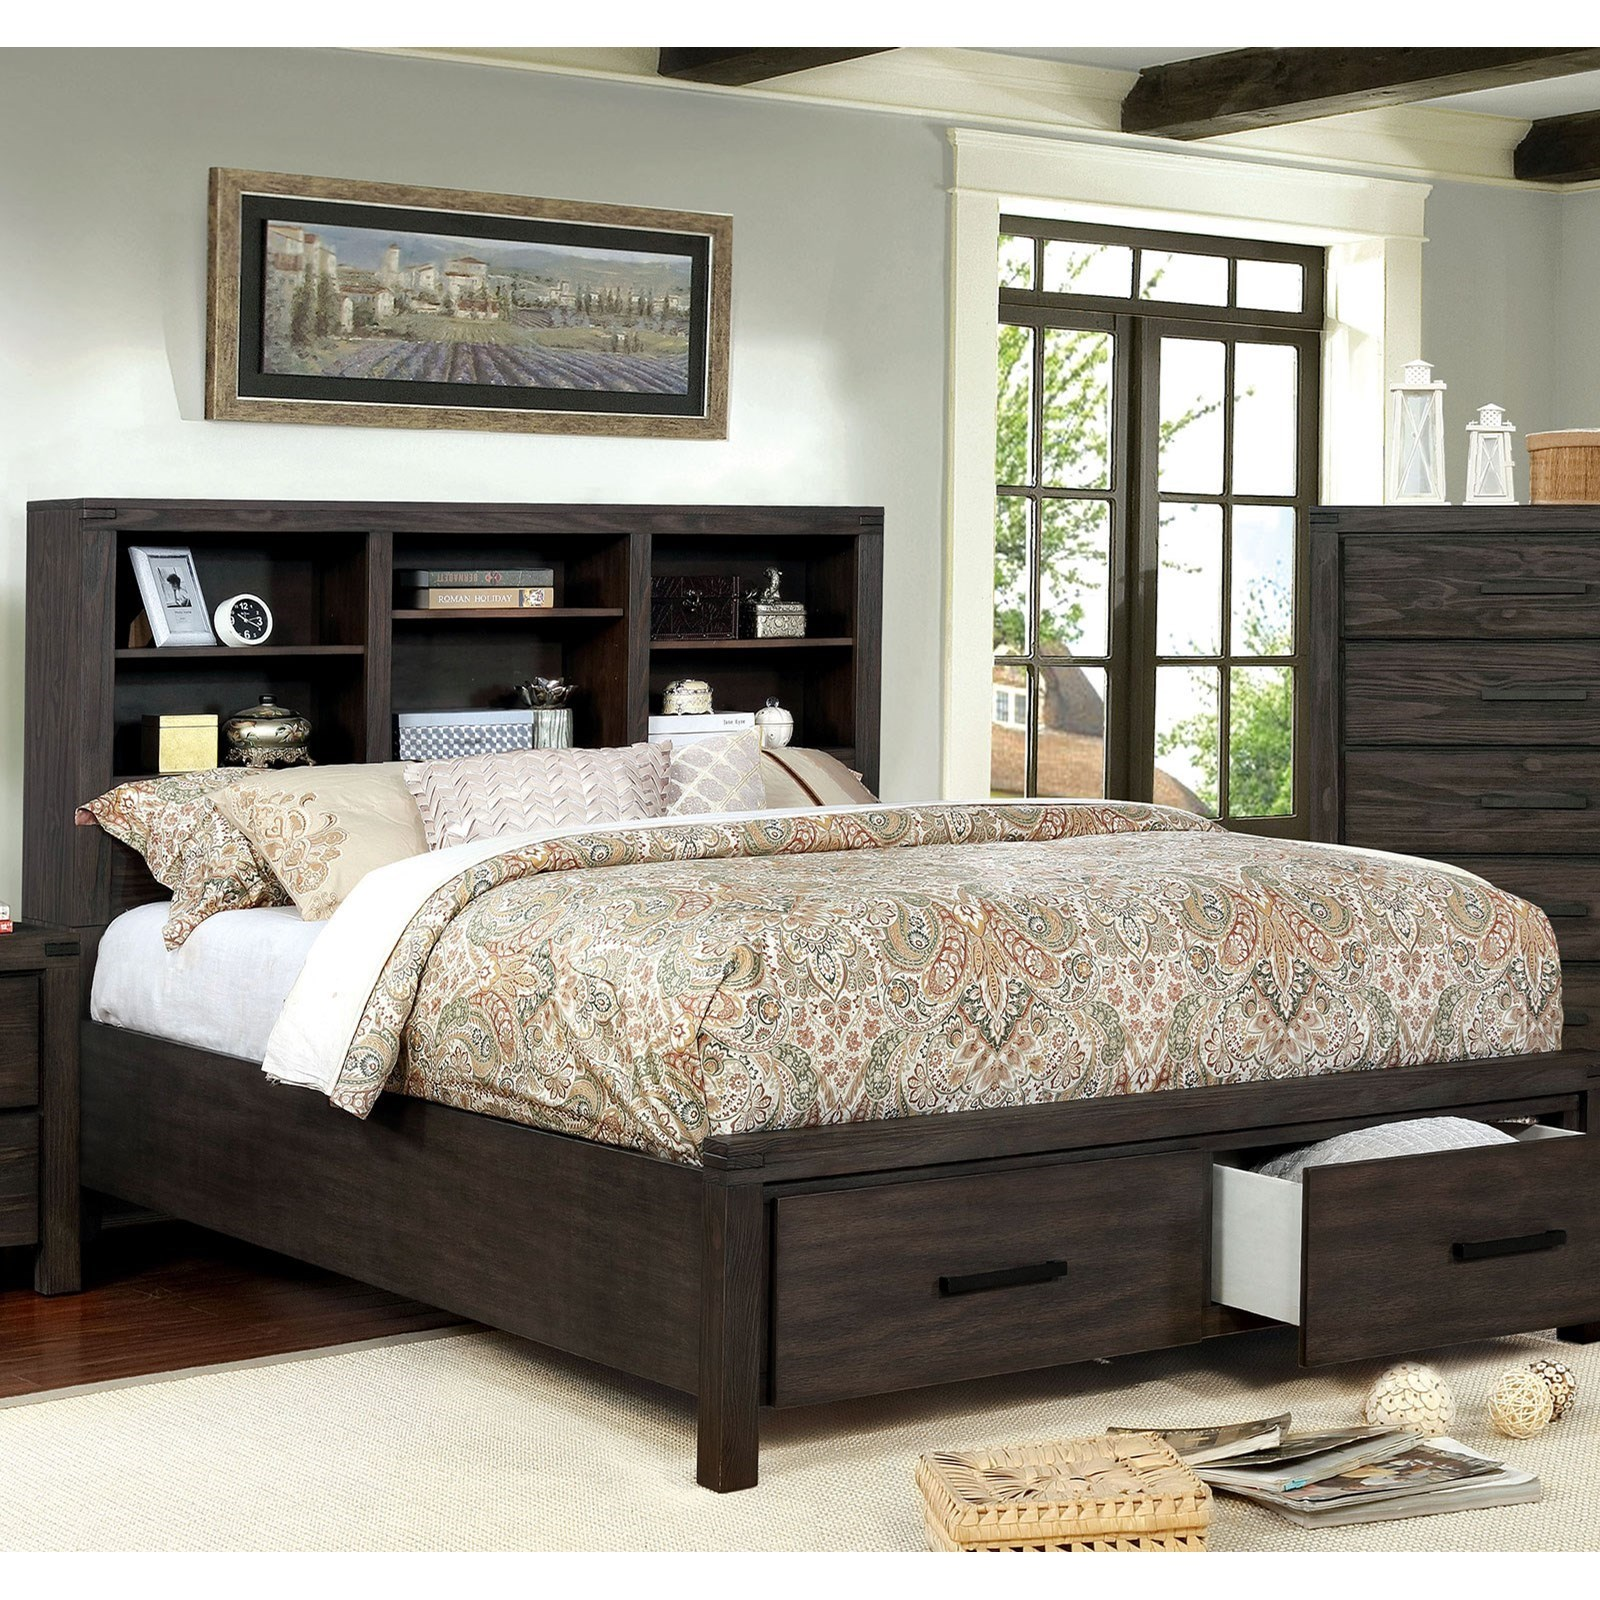 Furniture Of America Strasburg Rustic King 2 Drawer Storage Bed With Open Bookcase Headboard Dream Home Interiors Panel Beds